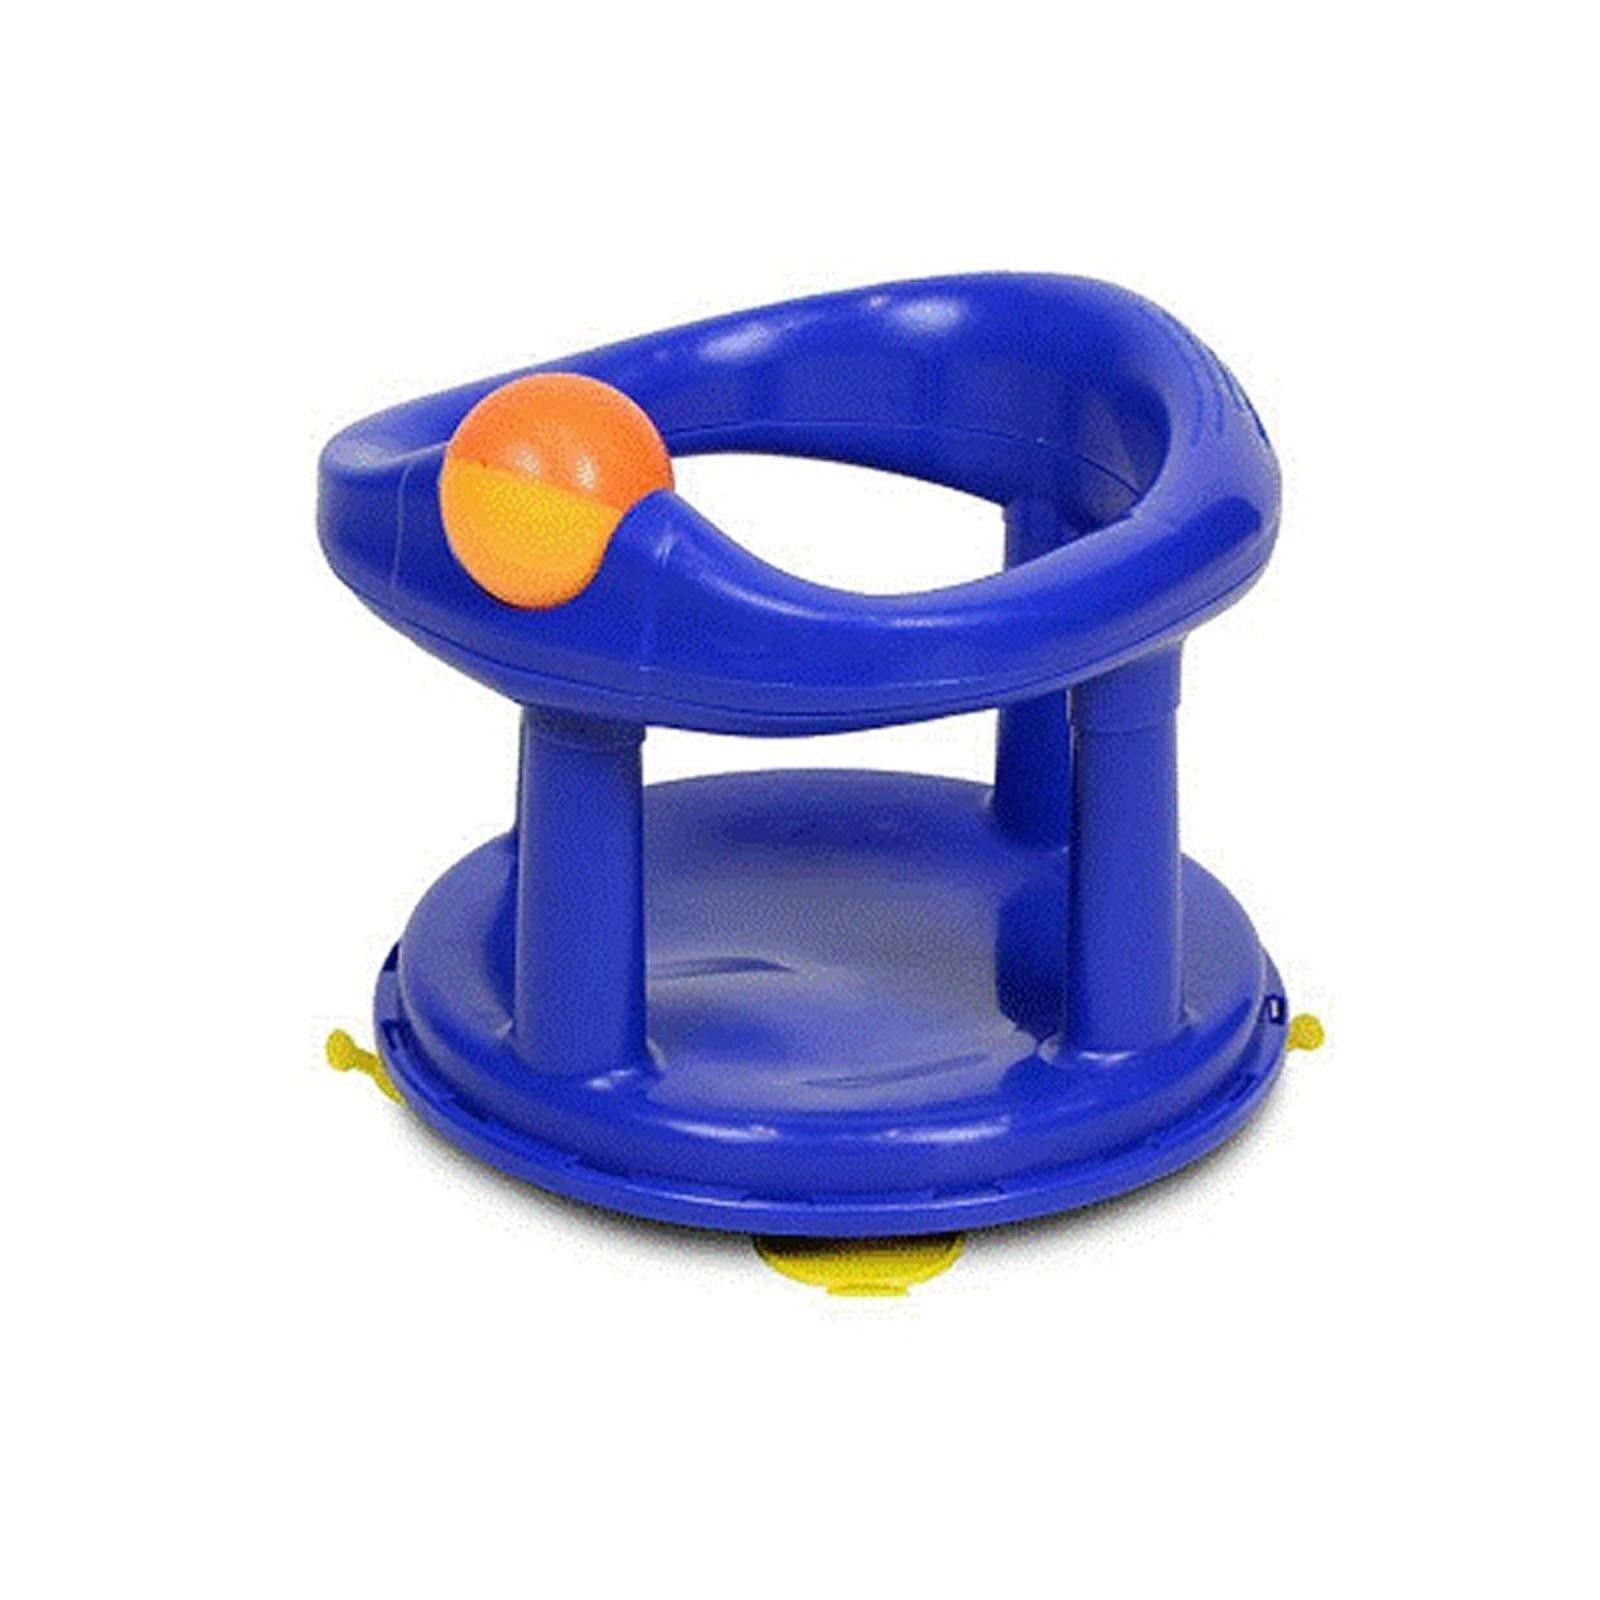 Safety 1St Swivel Blue Baby Bath Seat (Primary) | Baby bath seat ...